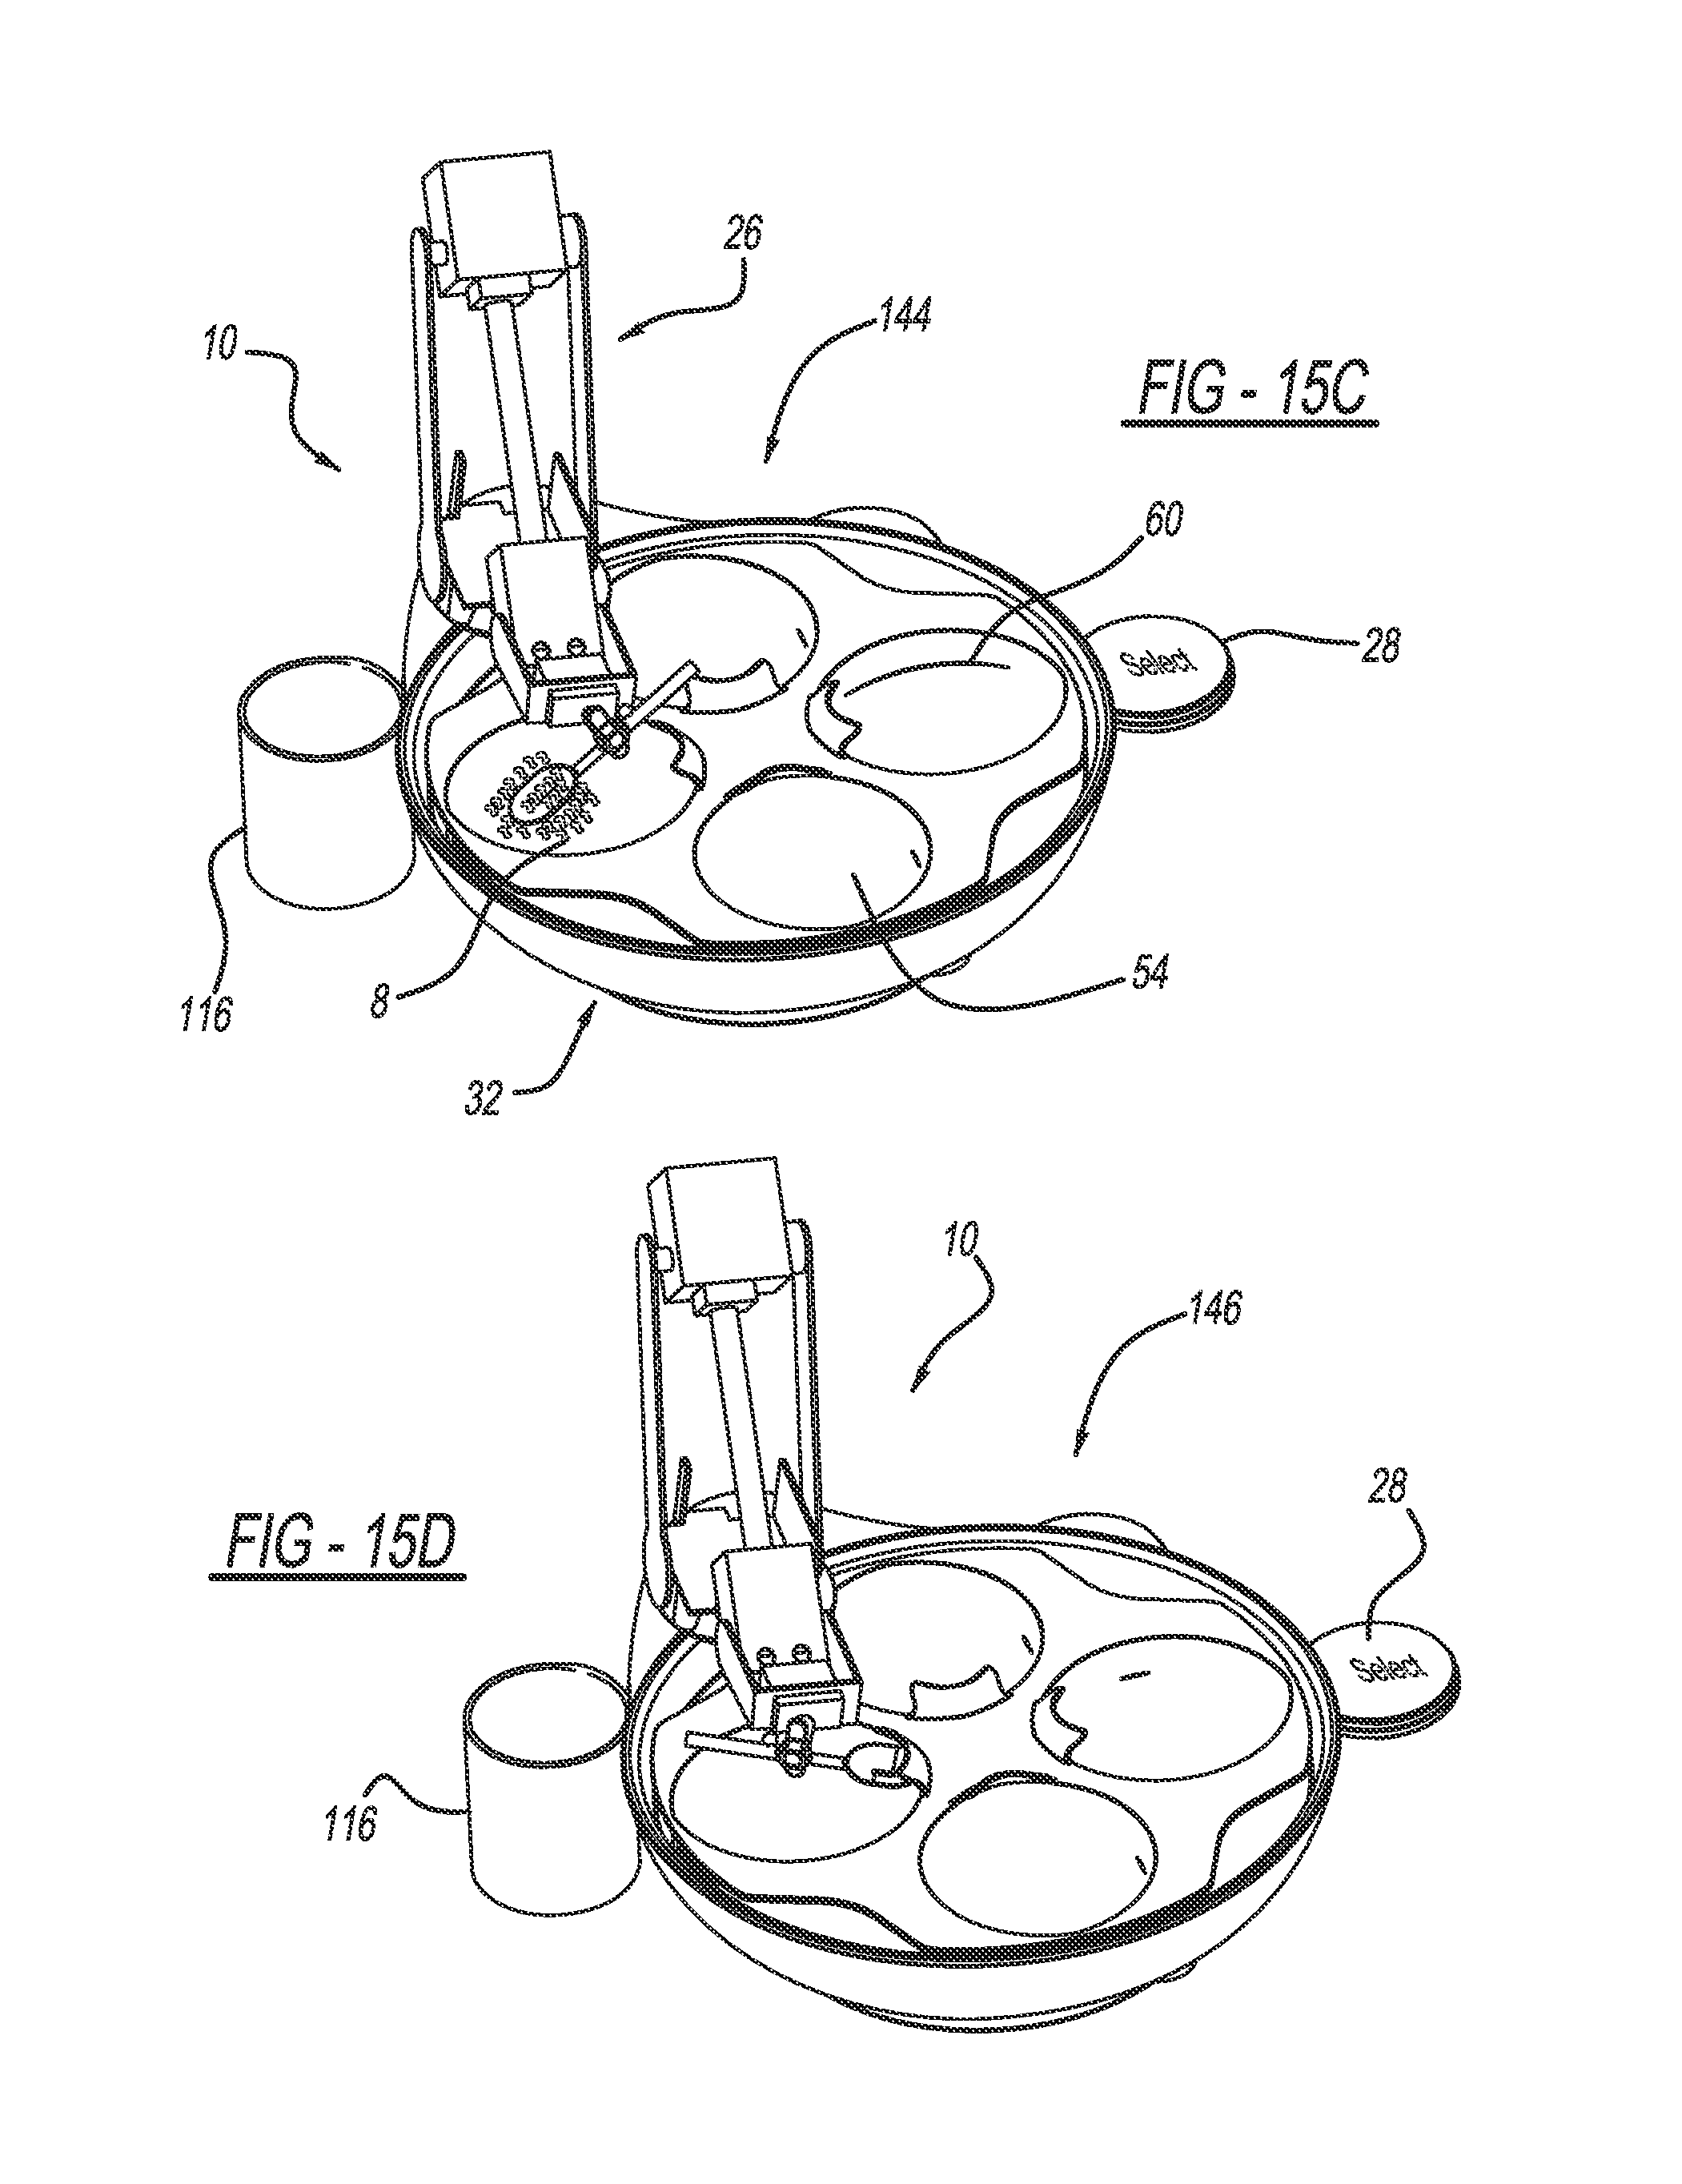 Patent us8761922 method and apparatus for monitoring food on wired jaw